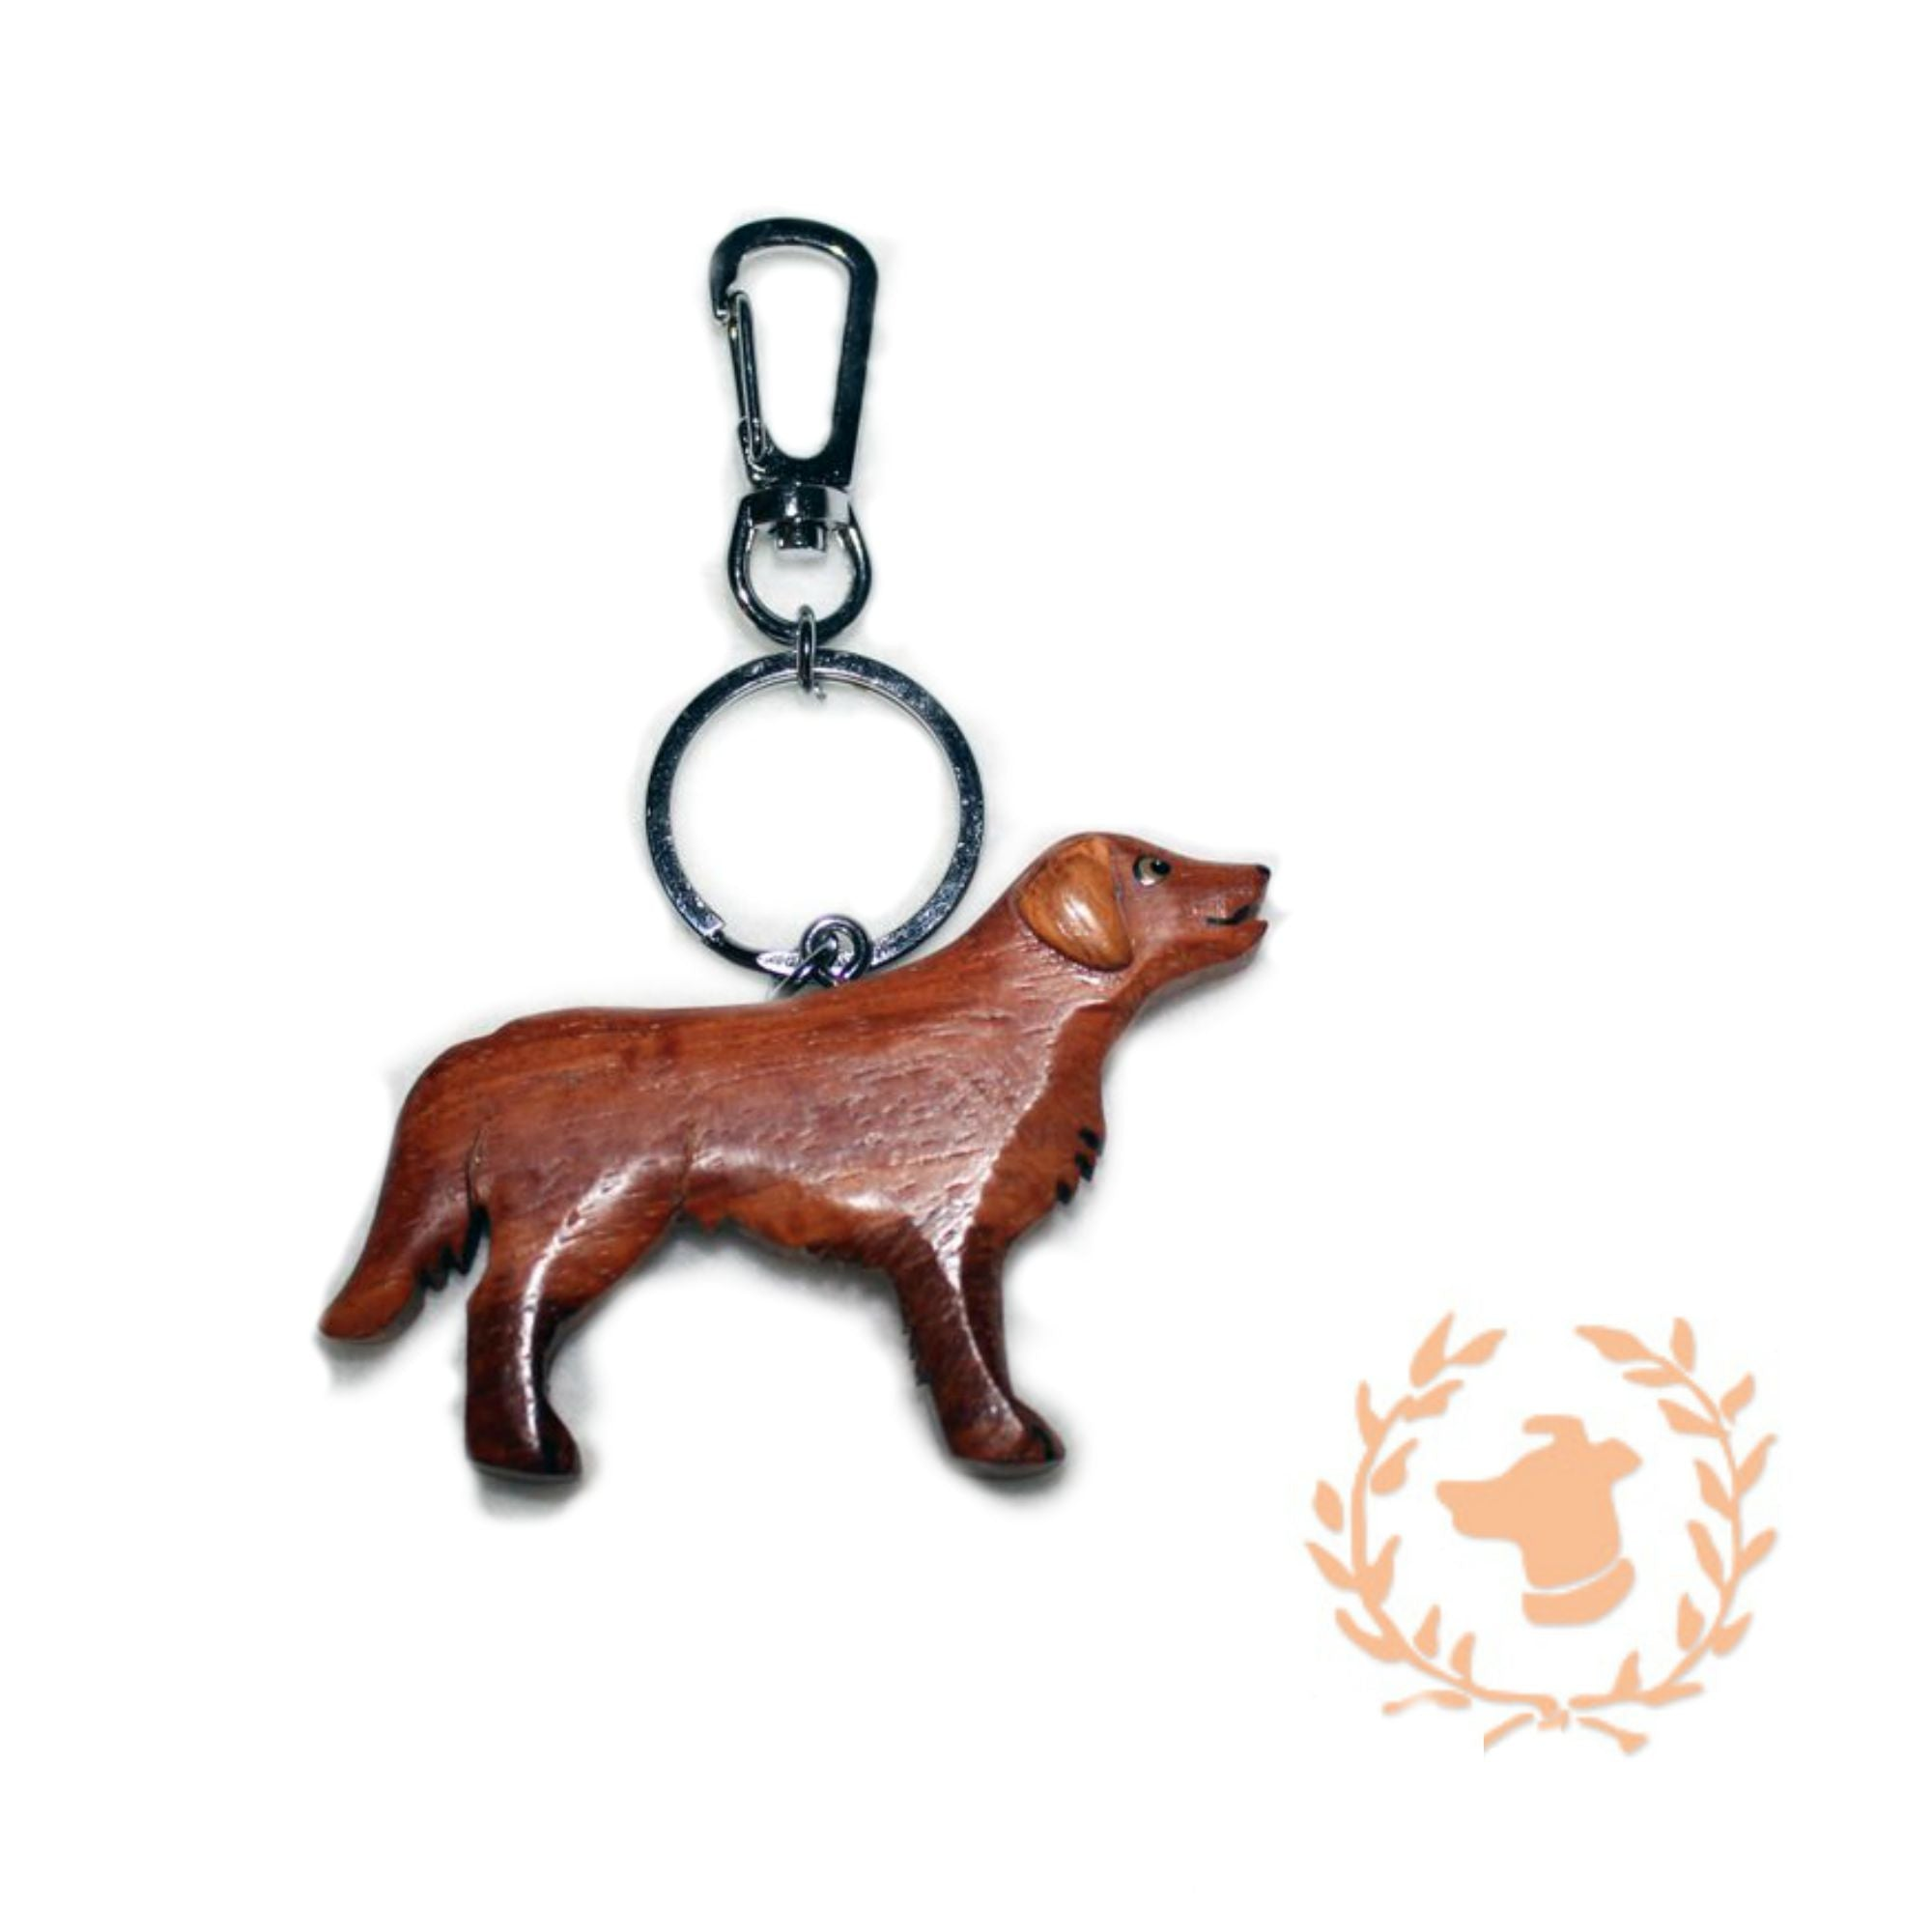 Keychain - Retriever - Dog Keychain